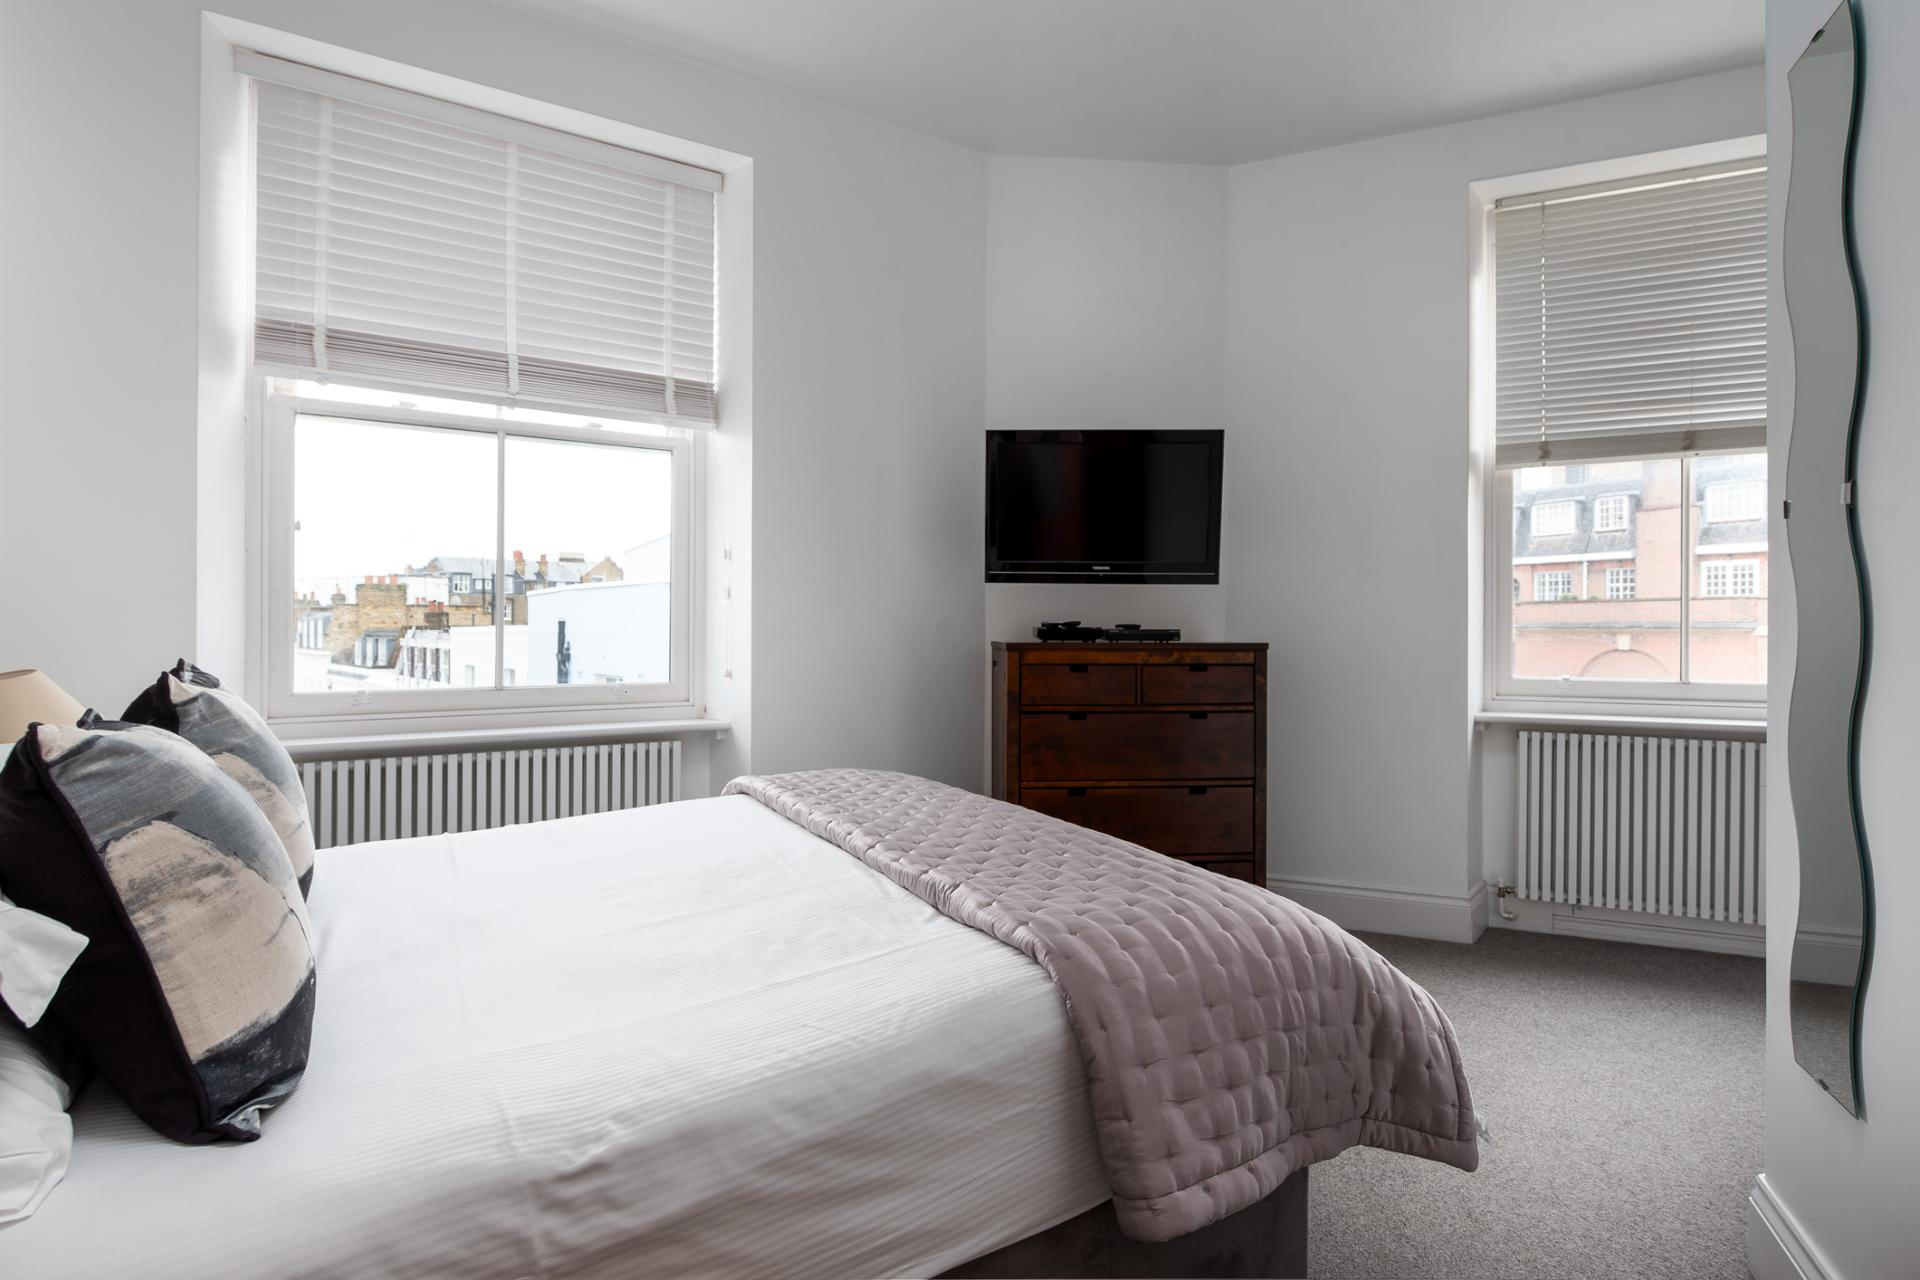 Bed at Chelsea Green Apartments, Chelsea, London - Citybase Apartments